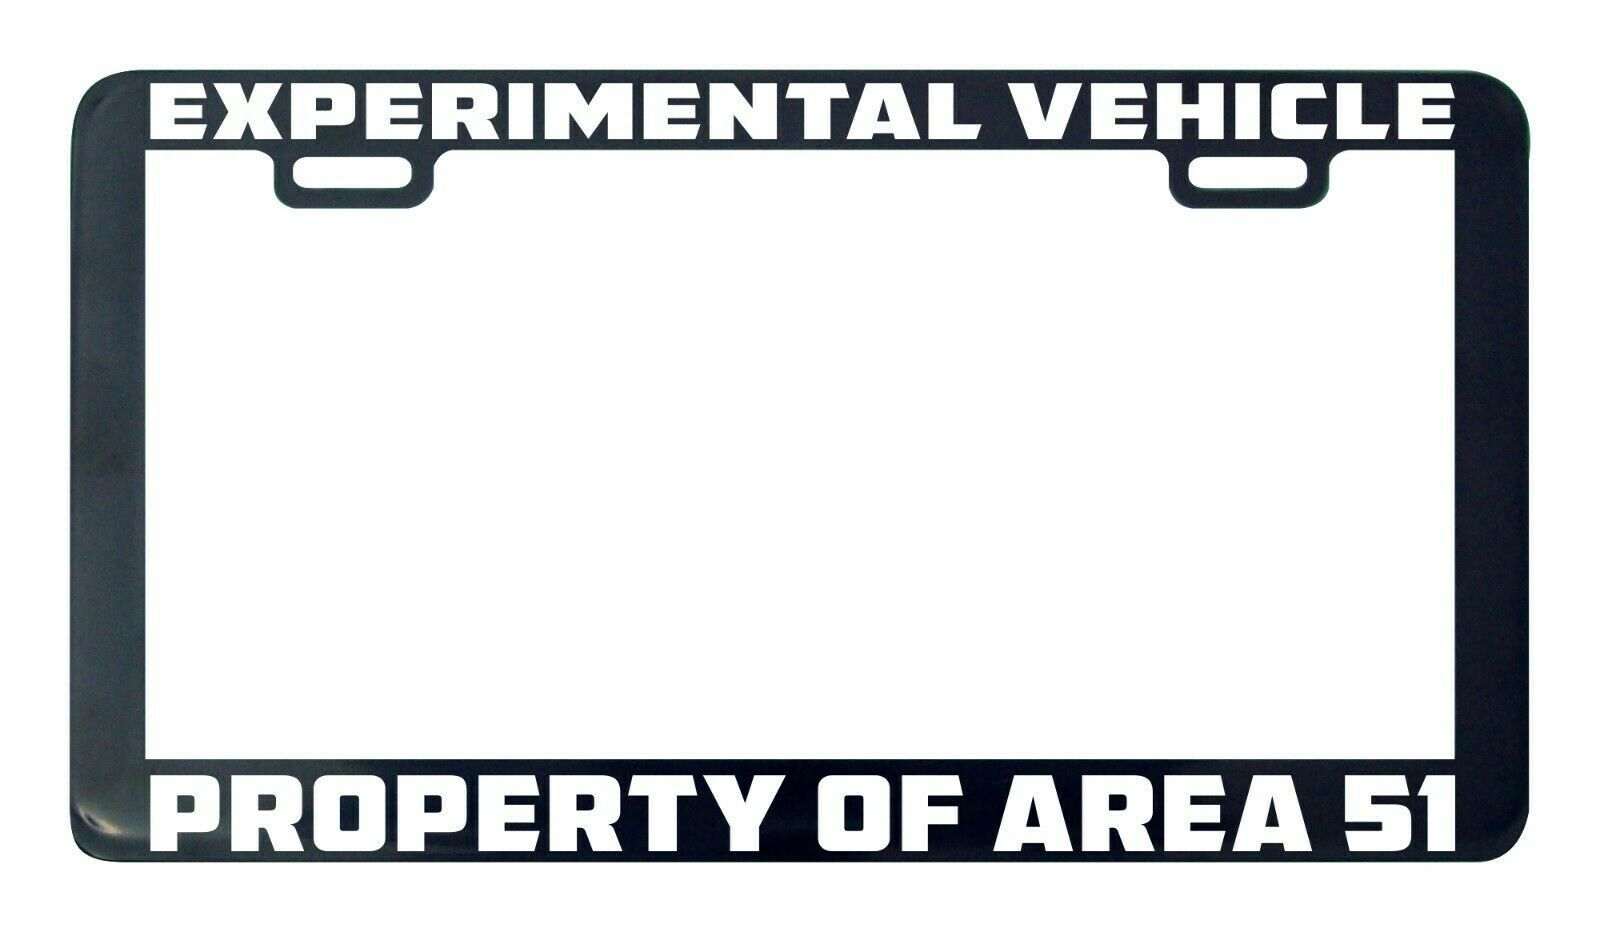 Primary image for Experimental vehicle property of area 51 UFO Alien license plate frame holder